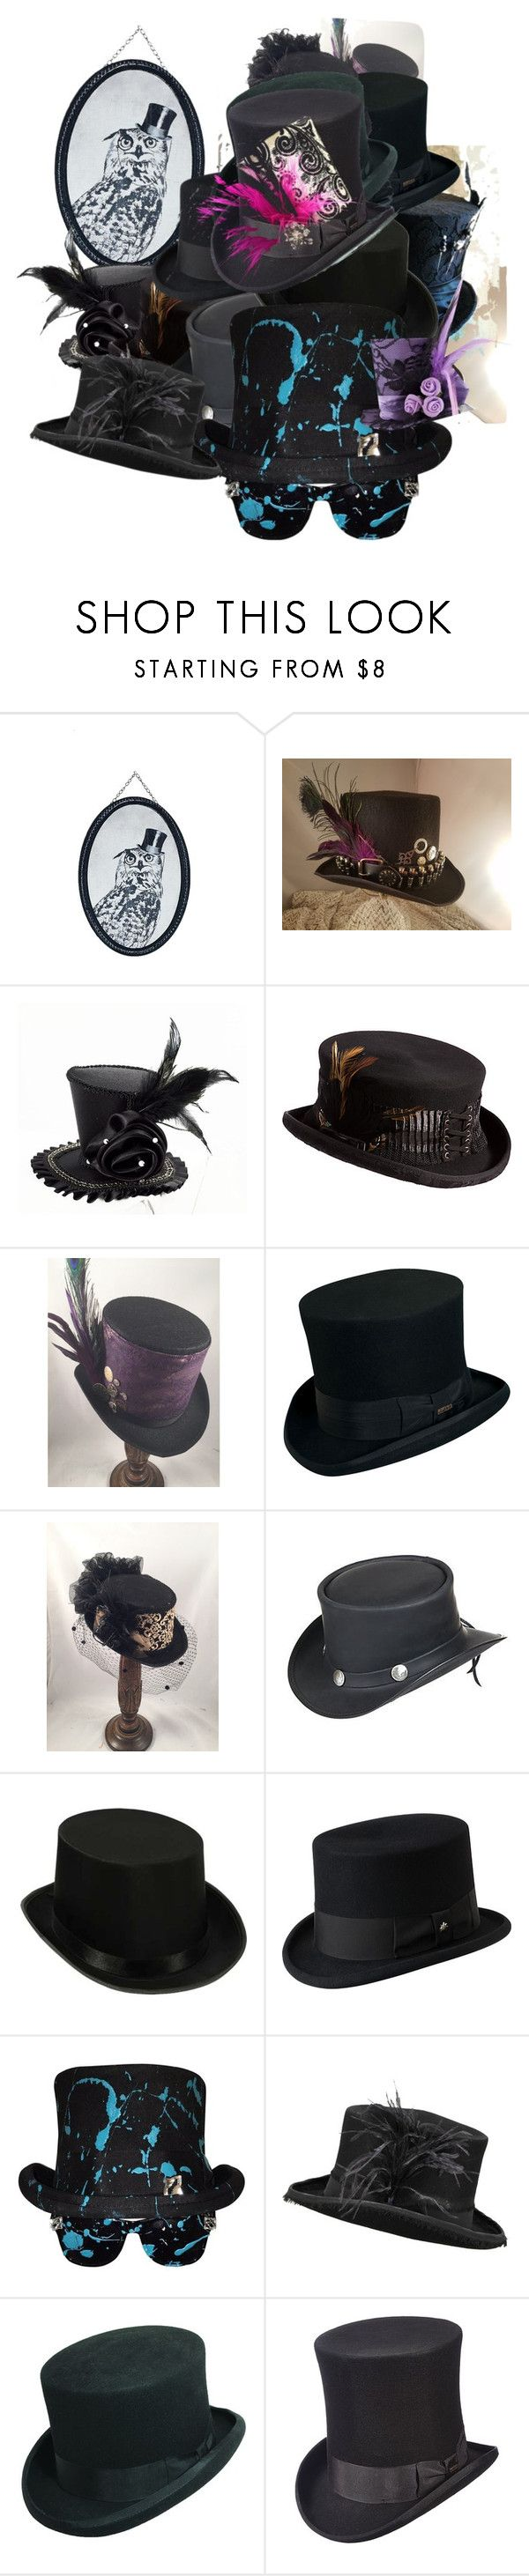 """""""Oswald's Tower of Top Hats"""" by lizbeigle ❤ liked on Polyvore featuring Graham & Brown, Forum Novelties, Overland Sheepskin Co., Scala, Masquerade and Bailey Western"""